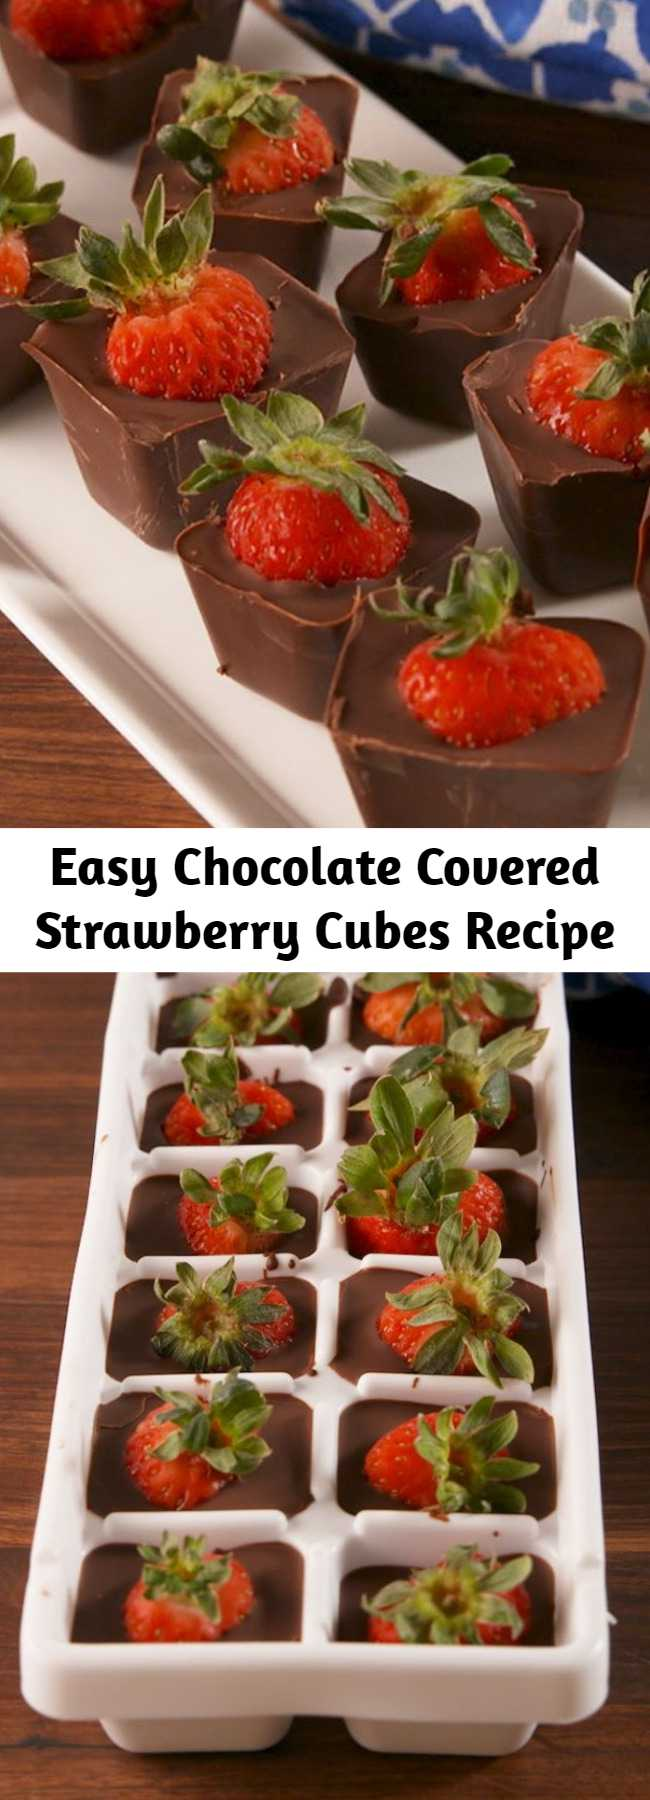 Easy Chocolate Covered Strawberry Cubes Recipe - This ice cube tray hack is the easiest way to make chocolate covered strawberries. #recipe #easyrecipe #chocolate #strawberry #strawberries #valentinesday #valentine #hack #lifehack #dessert #sweet #coconutoil